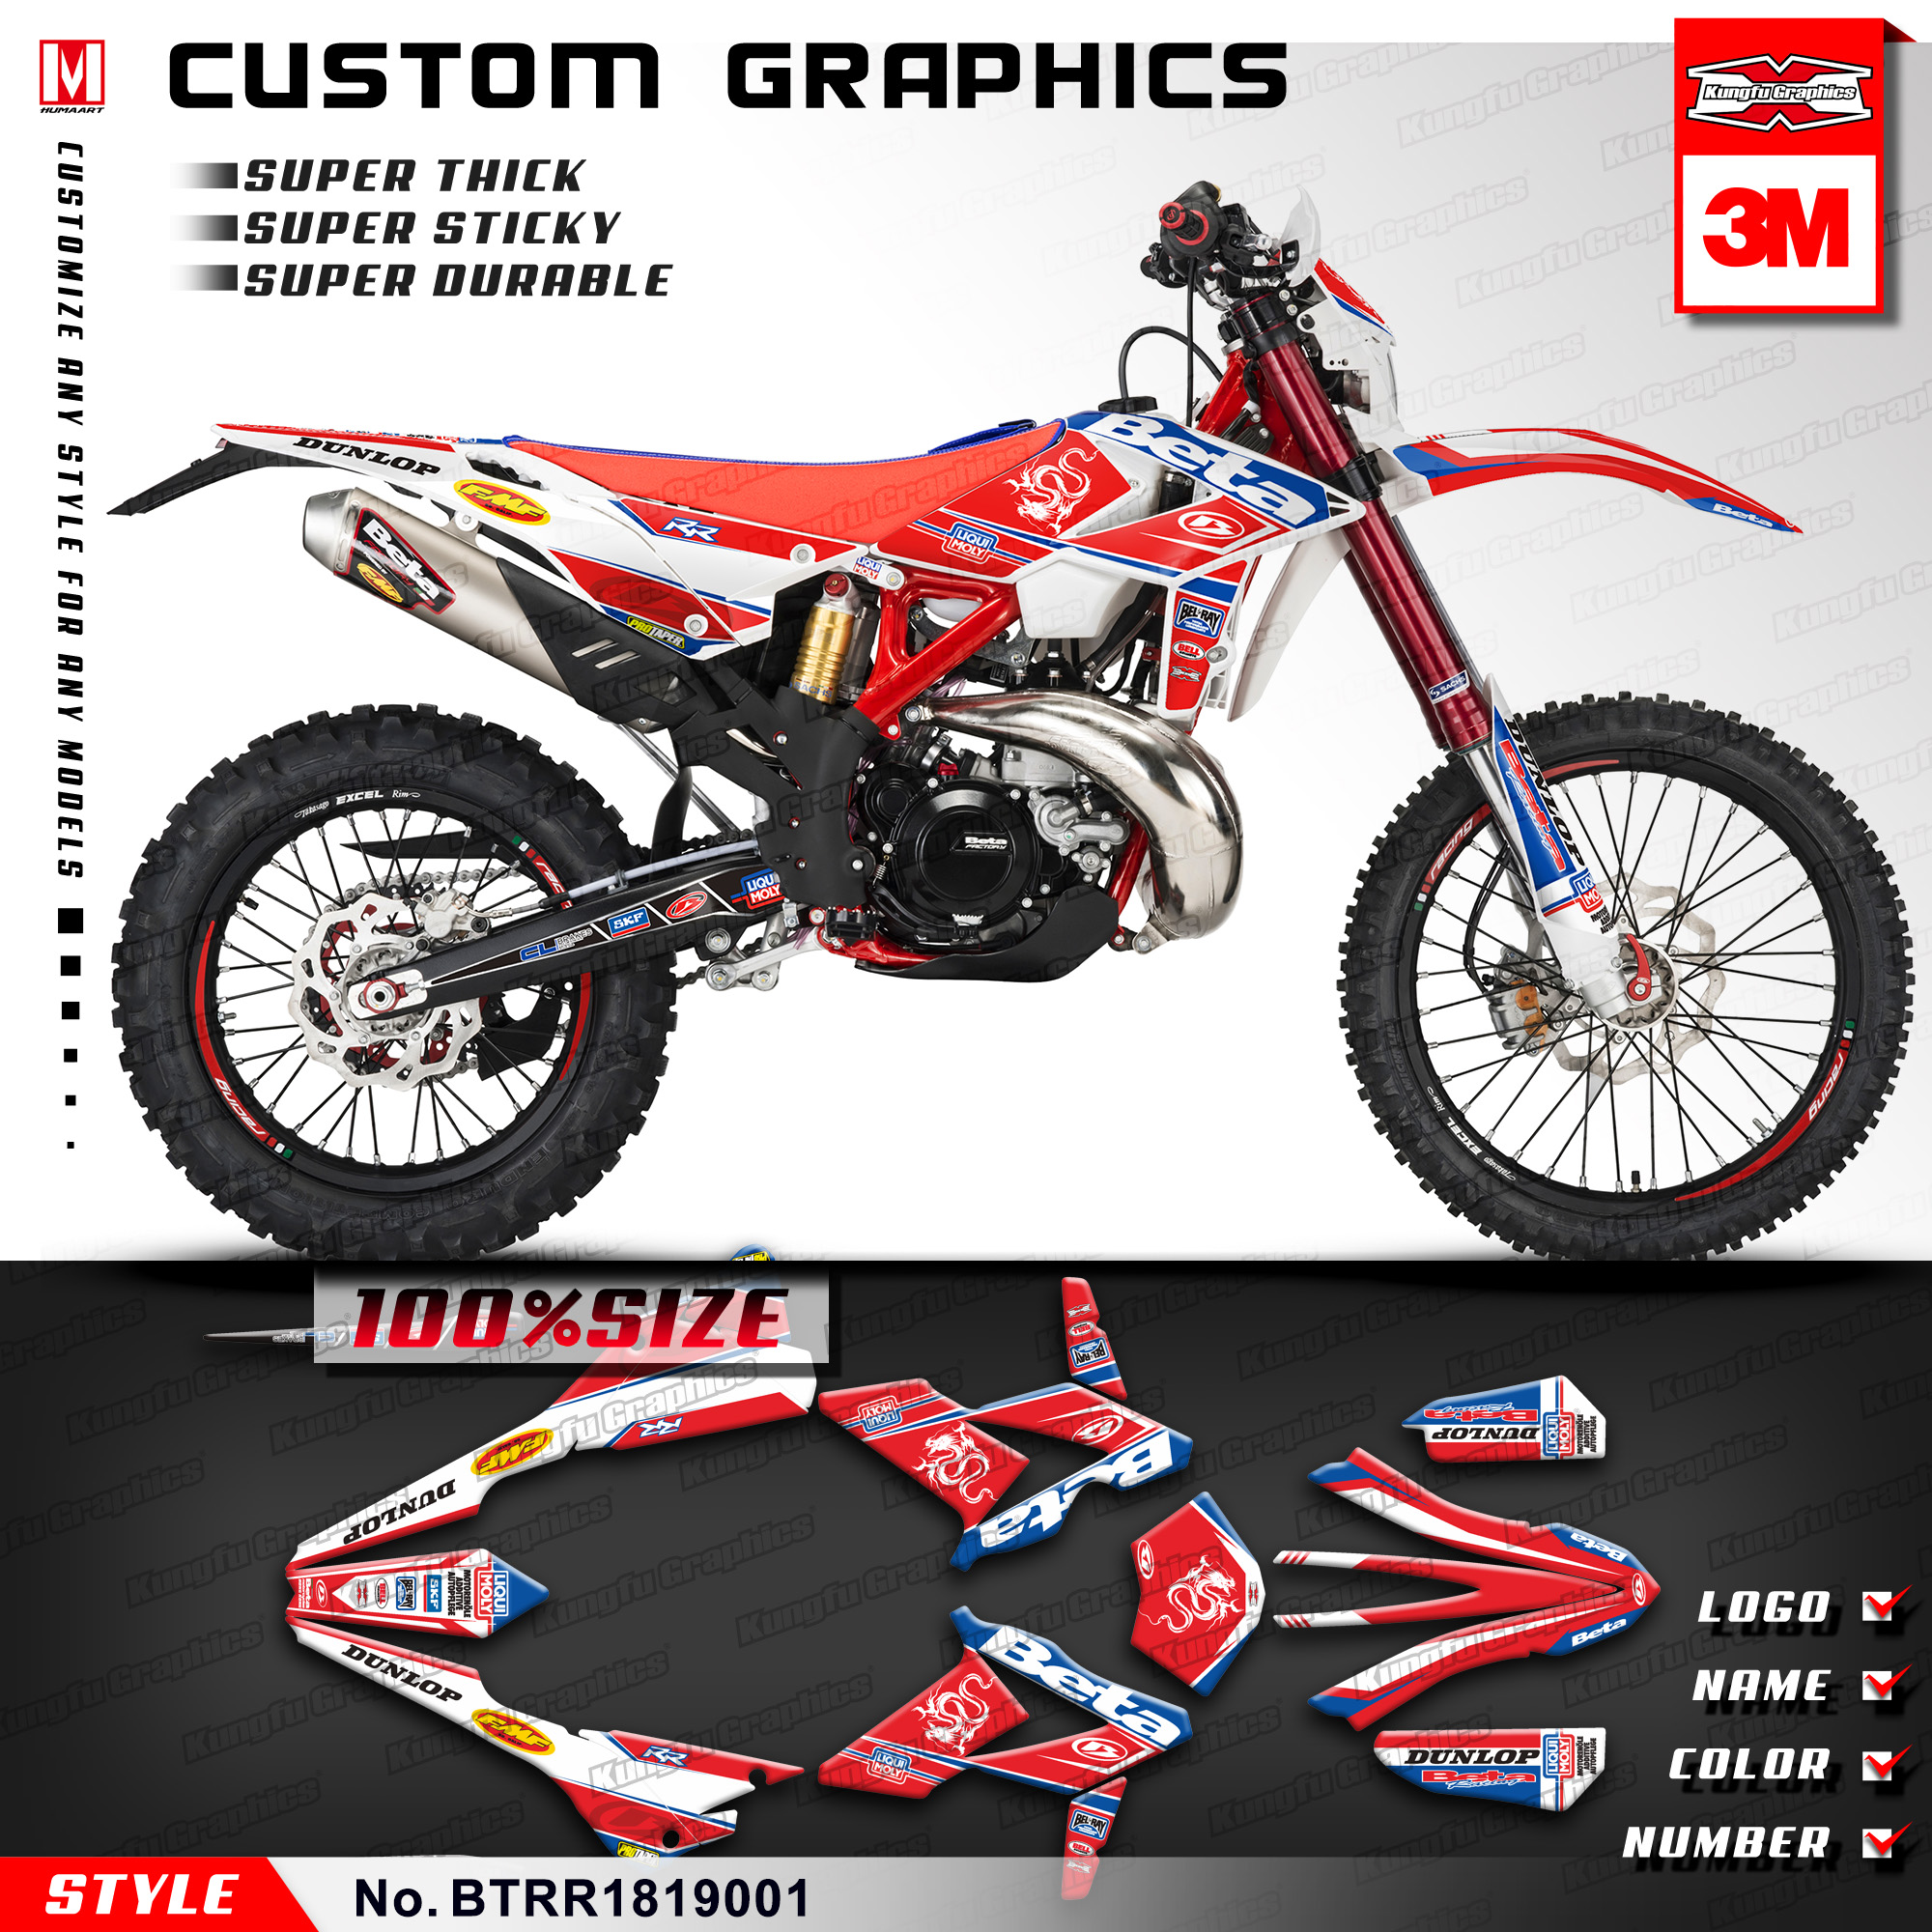 Us 139 89 kungfu graphics motocross custom stickers vinyl decals kit for beta 250 300 350 390 430 480 rr 2018 2019 style no btrr1819001 in decals